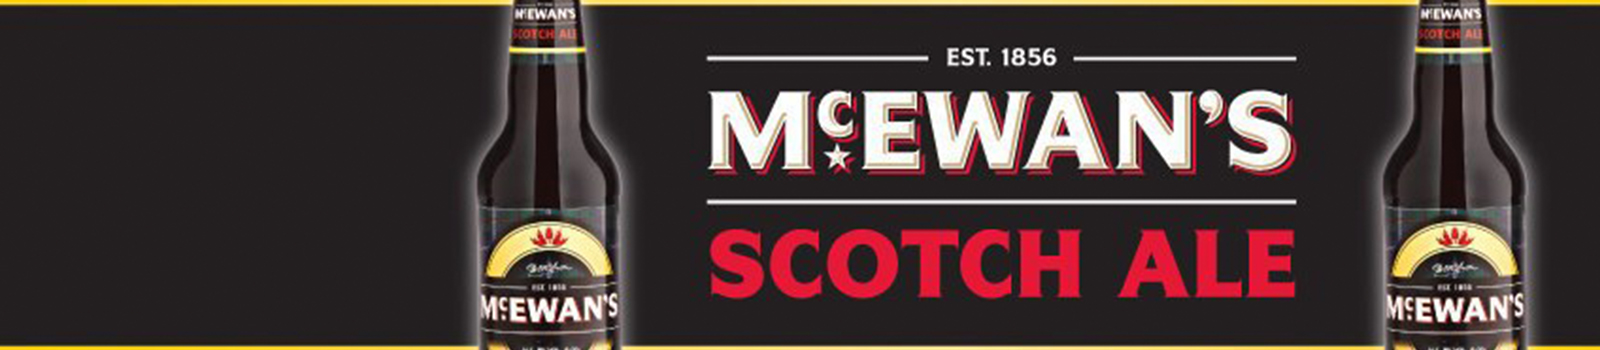 McEwans Scotch Beer, Marston's, Trajectory Beverage Partners